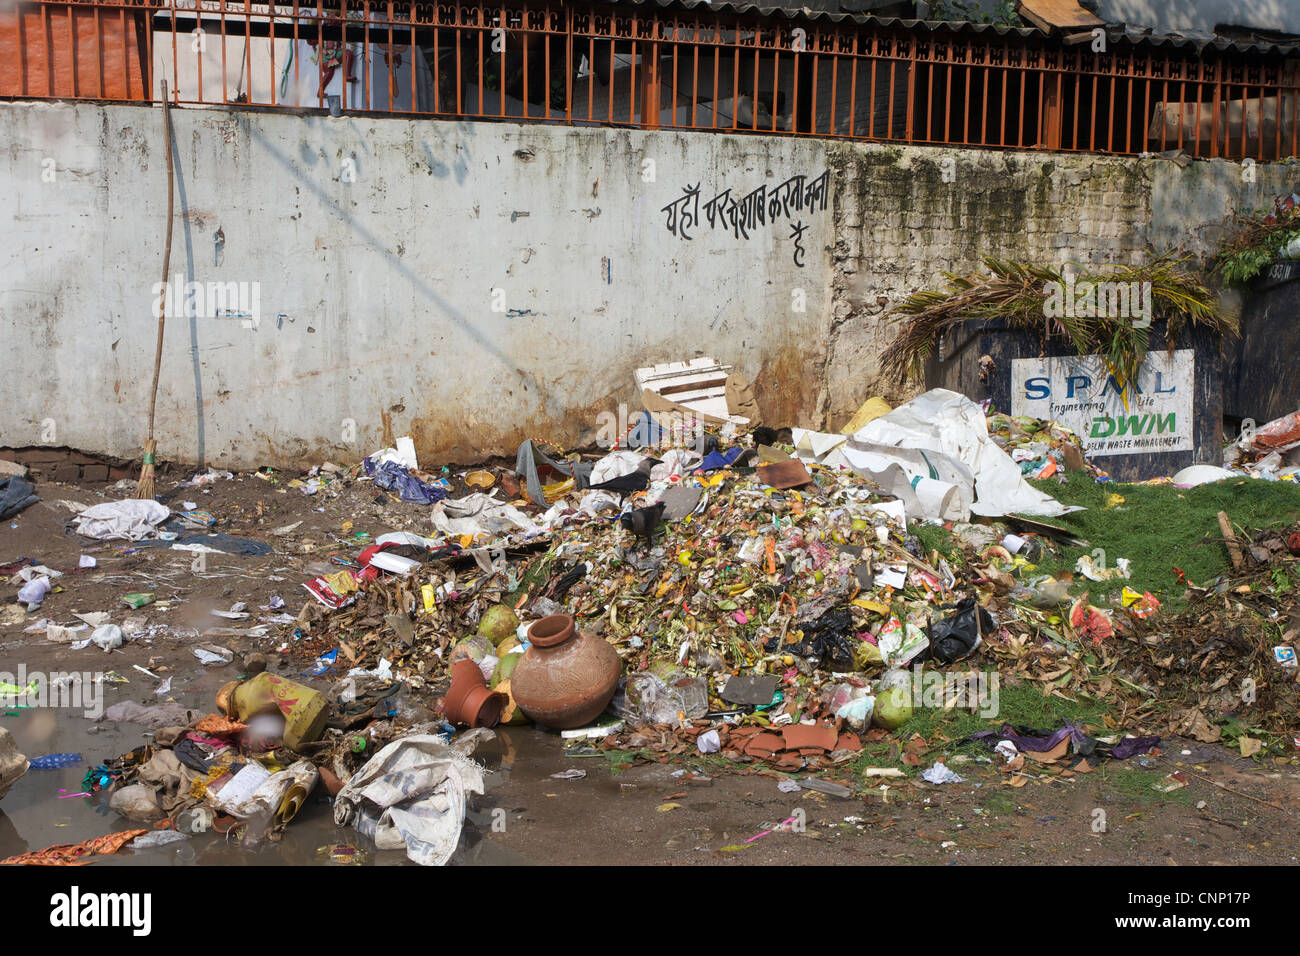 Rubbish piled up on the streets of New Delhi, India. - Stock Image